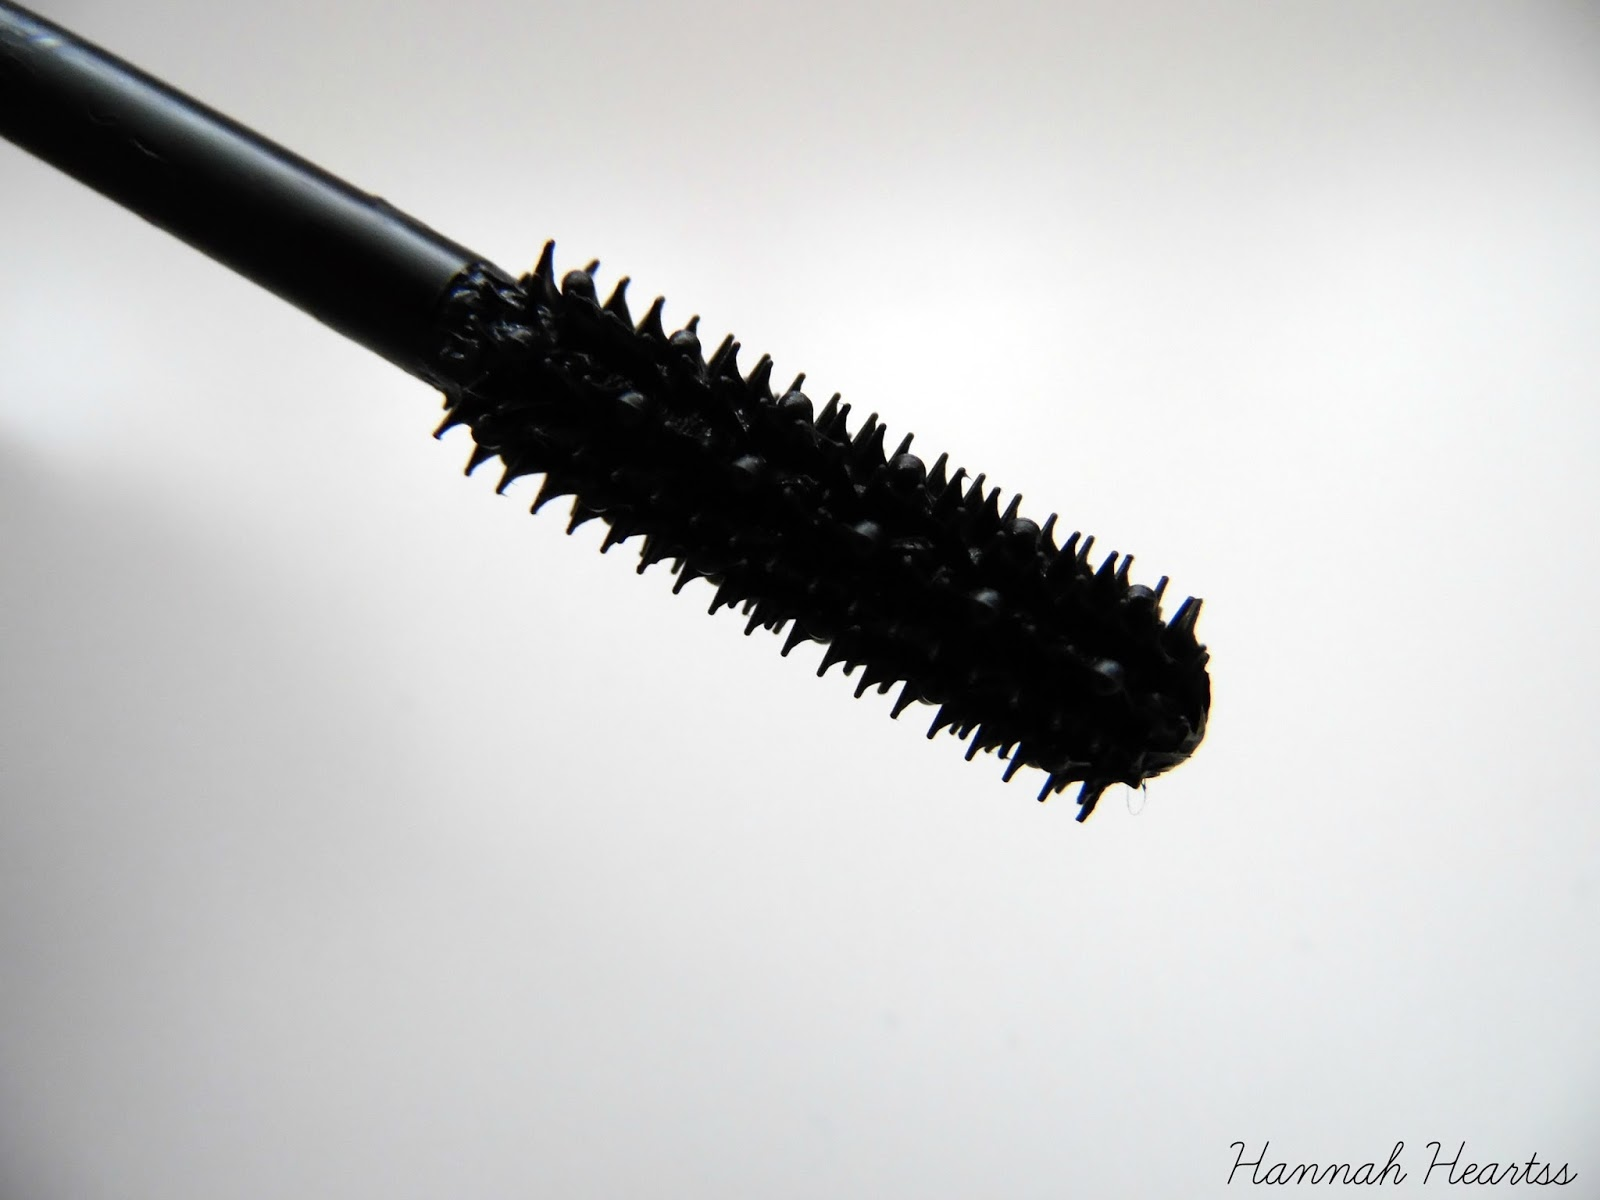 Bourjois 1 Seconde Mascara